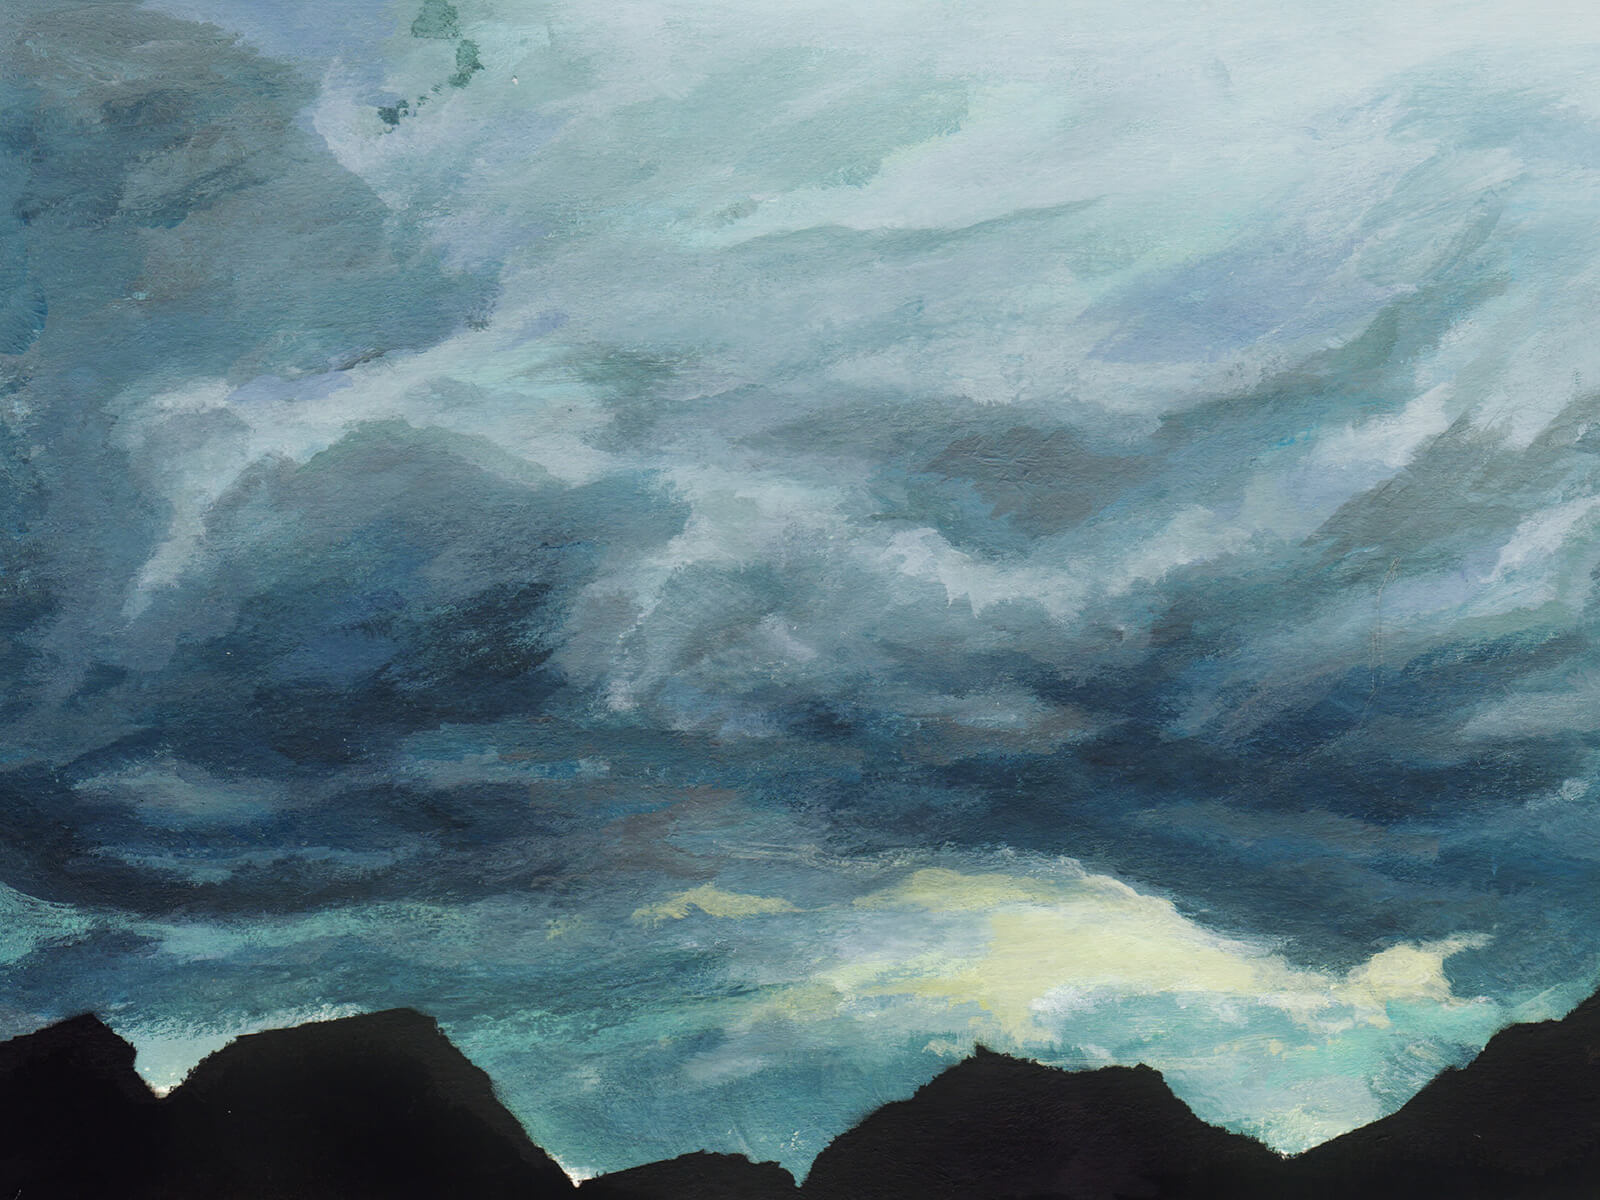 Painting of gathering gray-blue storm clouds above black mountain peaks.